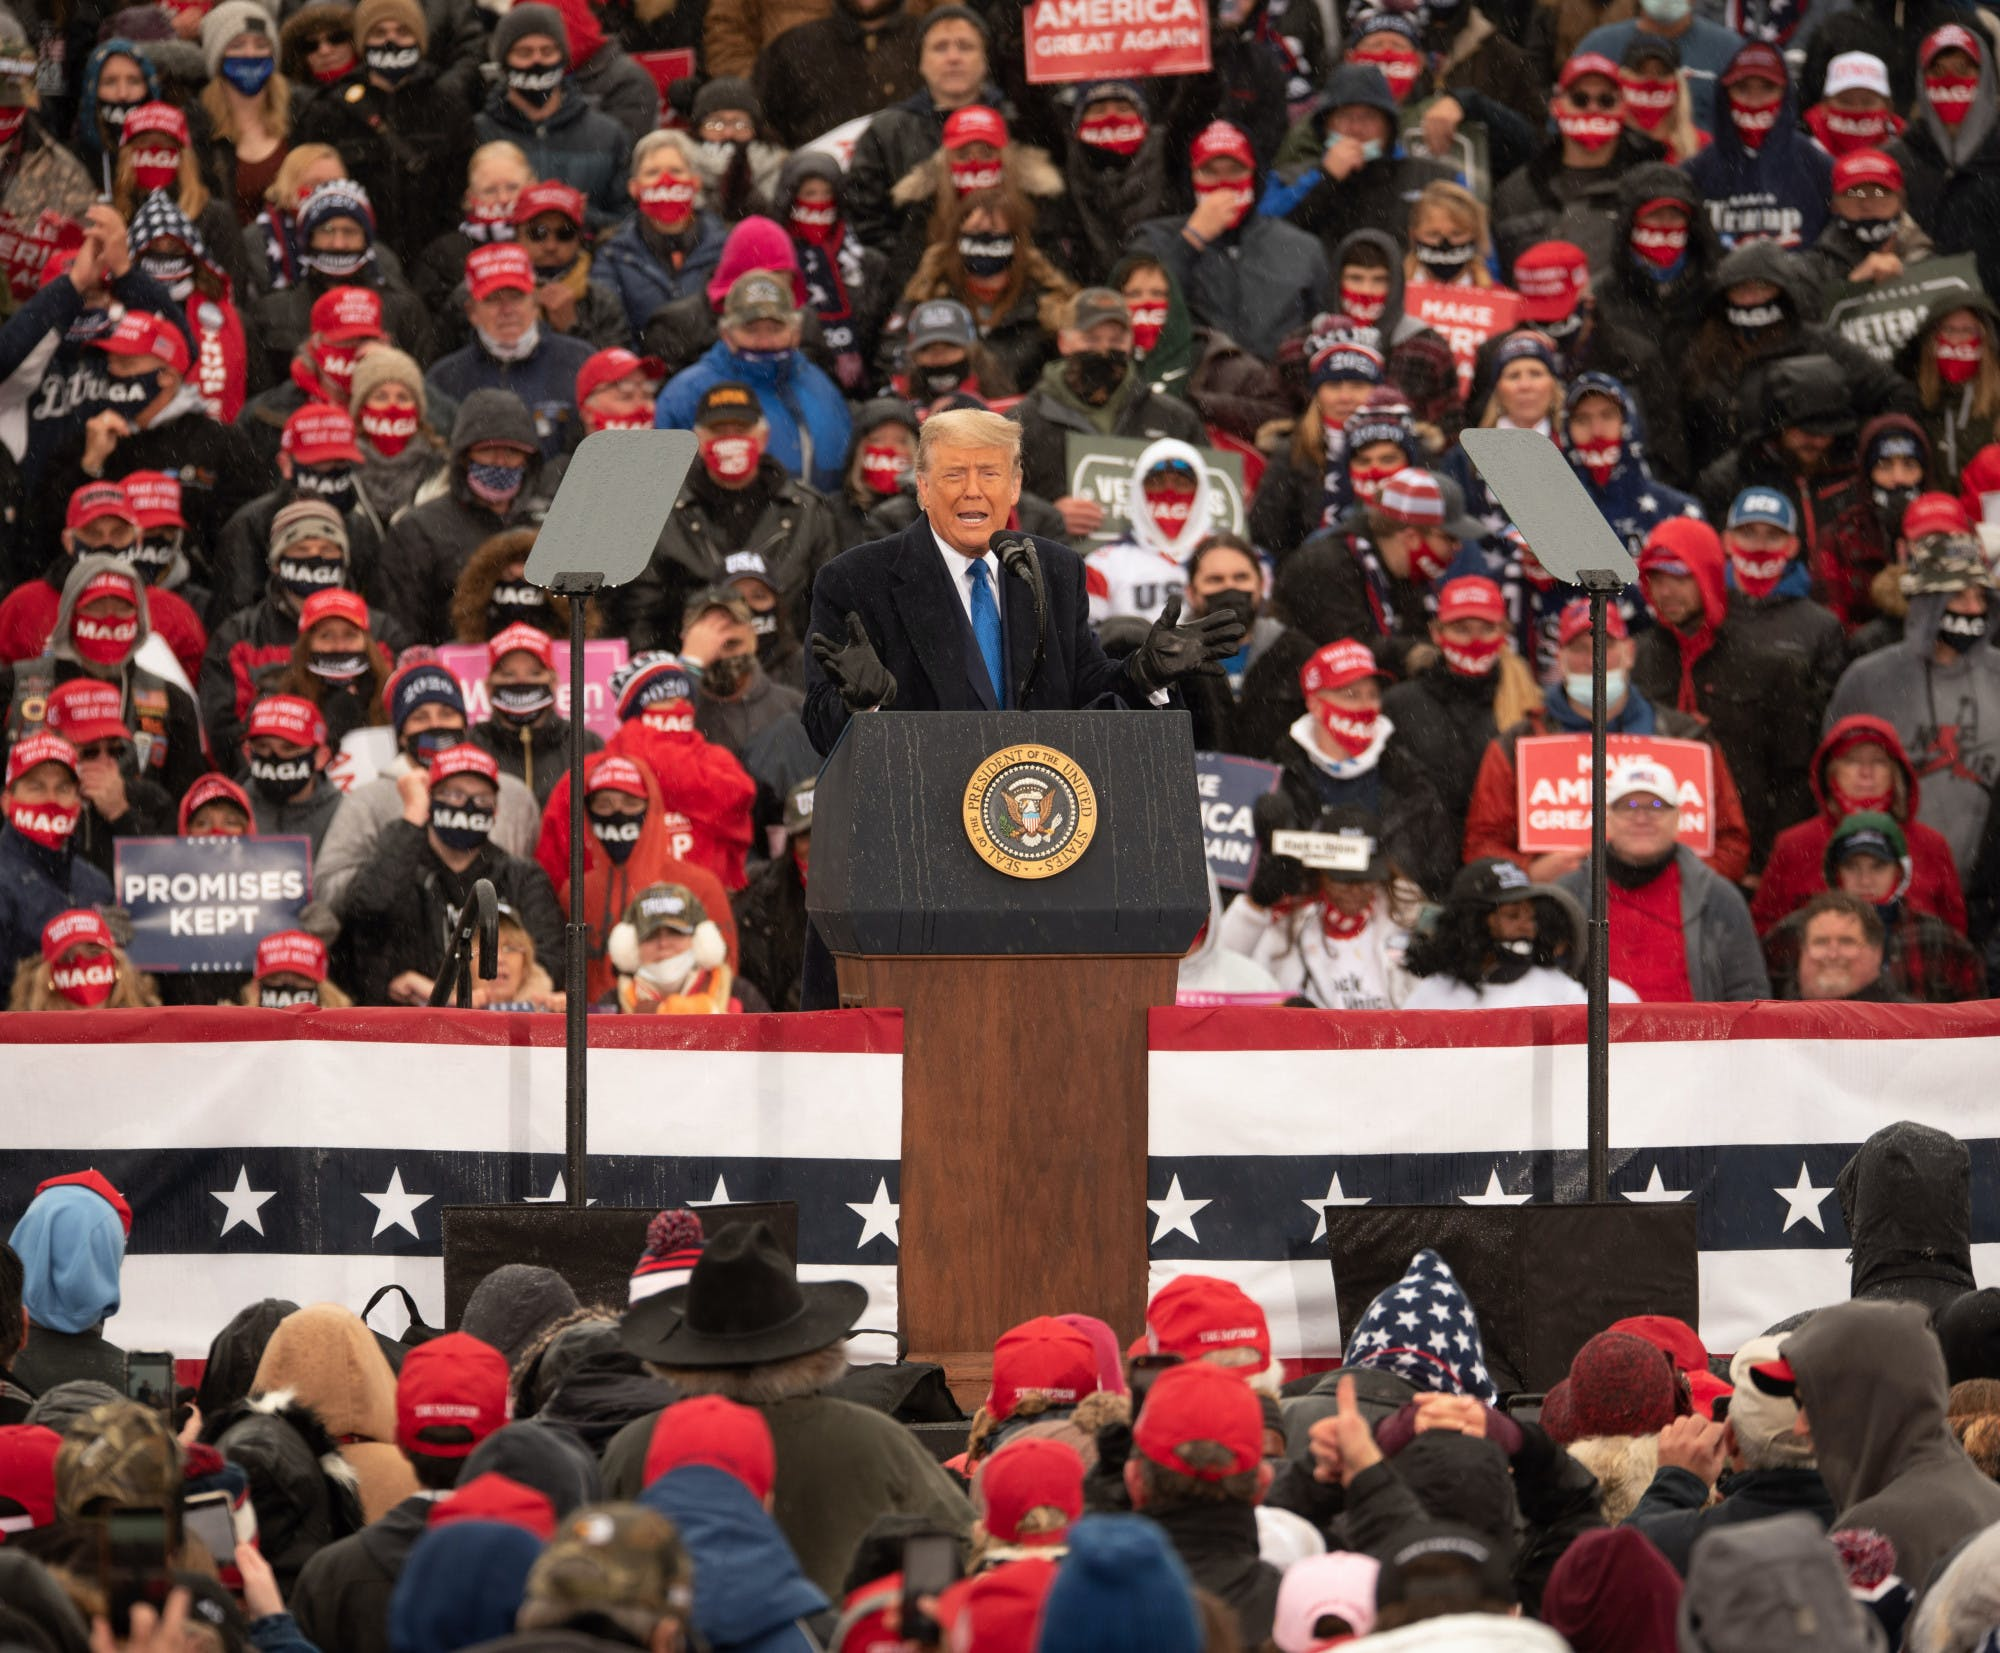 Then-President Donald Trump stands and speaks at a podium among a crowd of people wearing red hats and Trump clothing.